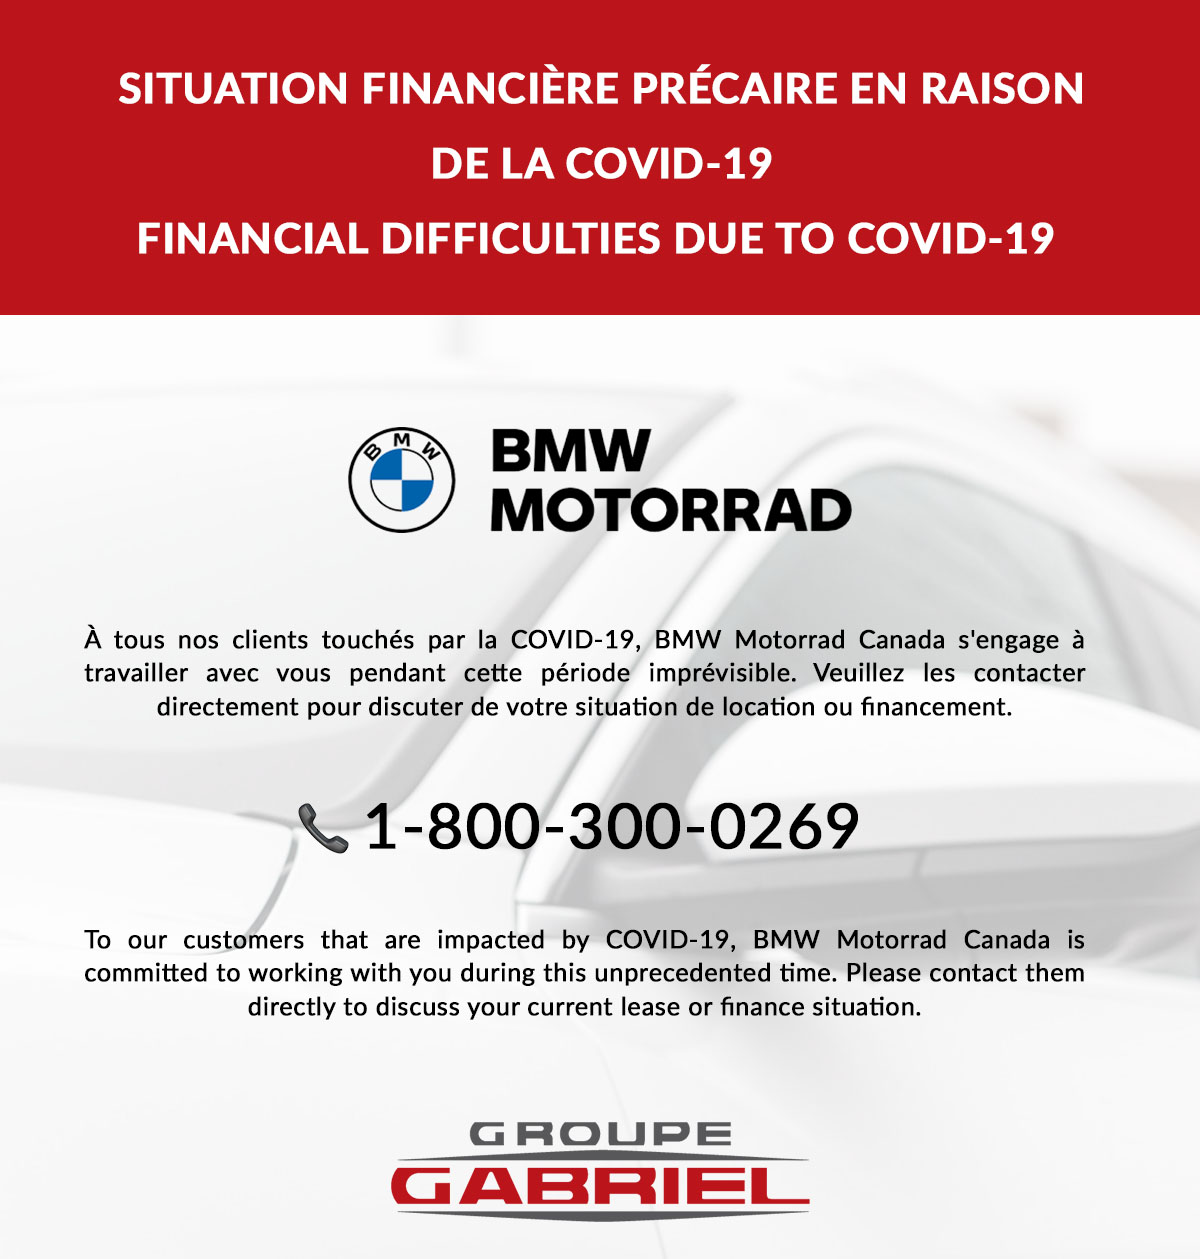 Financial difficulties due to Covid-19